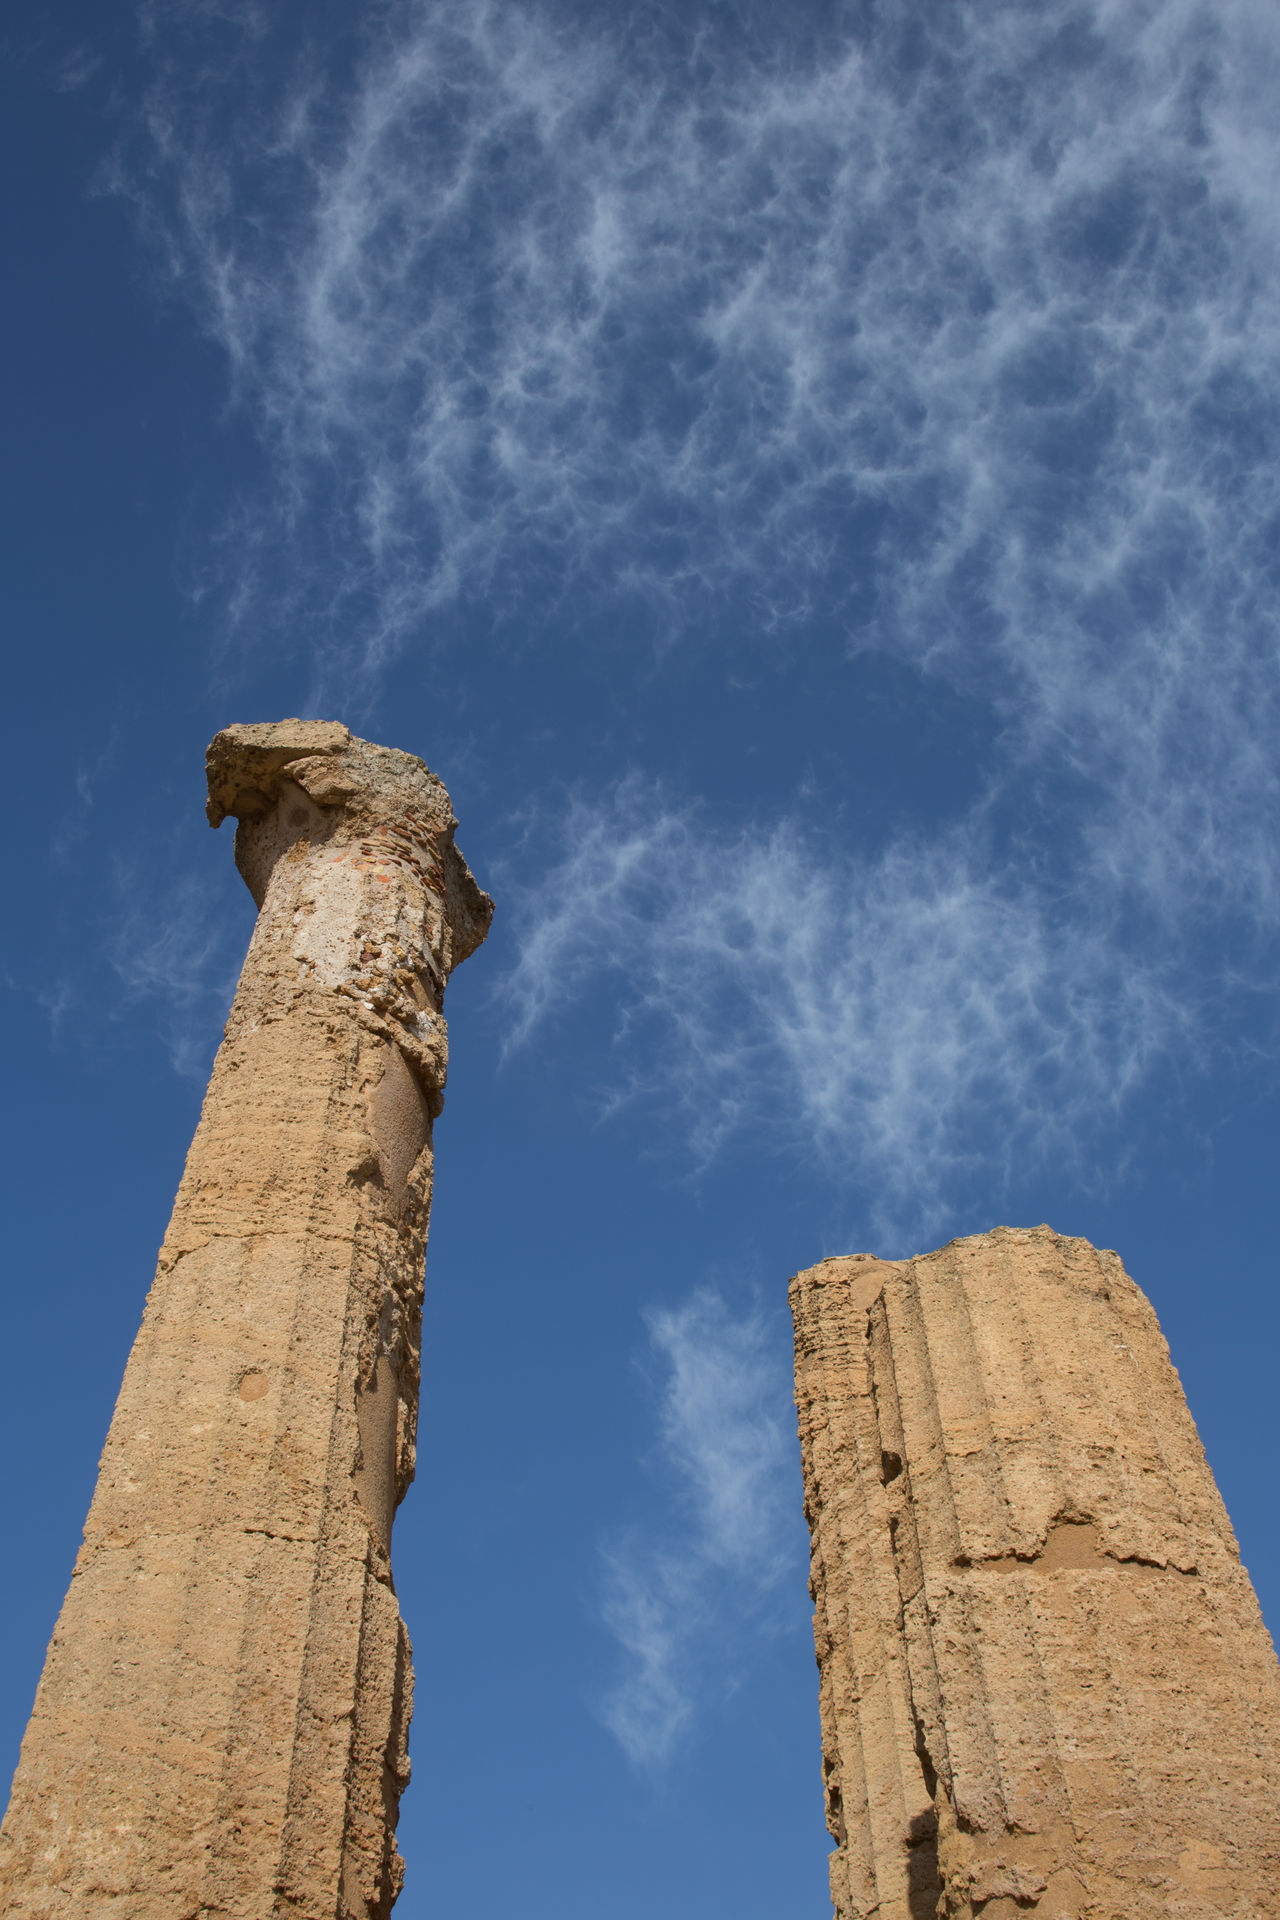 Rovine su cielo blu Ancient Ancient Civilization Architecture Blue Building Exterior Built Structure Cloud - Sky Day History Low Angle View Nature No People Old Ruin Outdoors Sky Tempio Di Giunone Valle Dei Templi